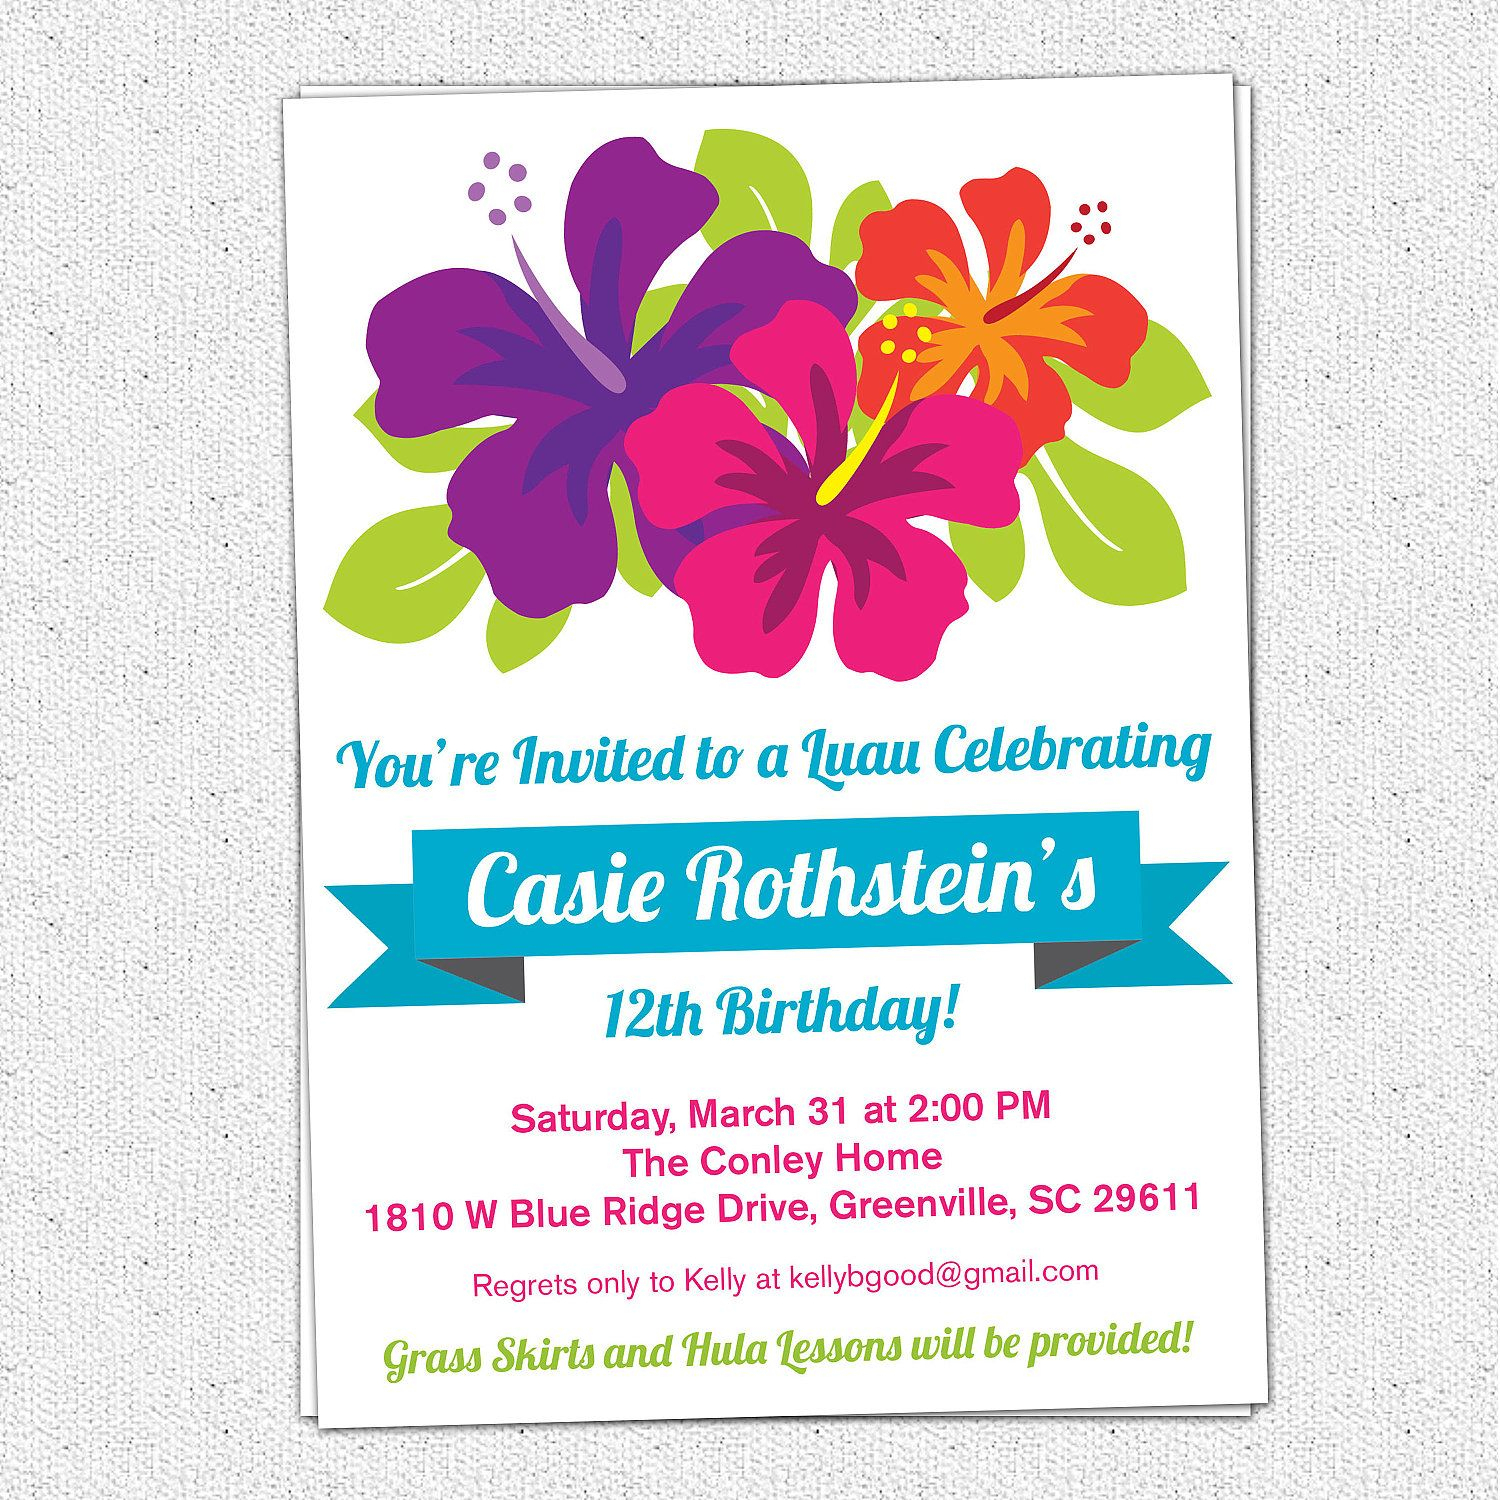 Free Printable Luau Birthday Invitations Templates | Party - Free Printable Luau Baby Shower Invitations